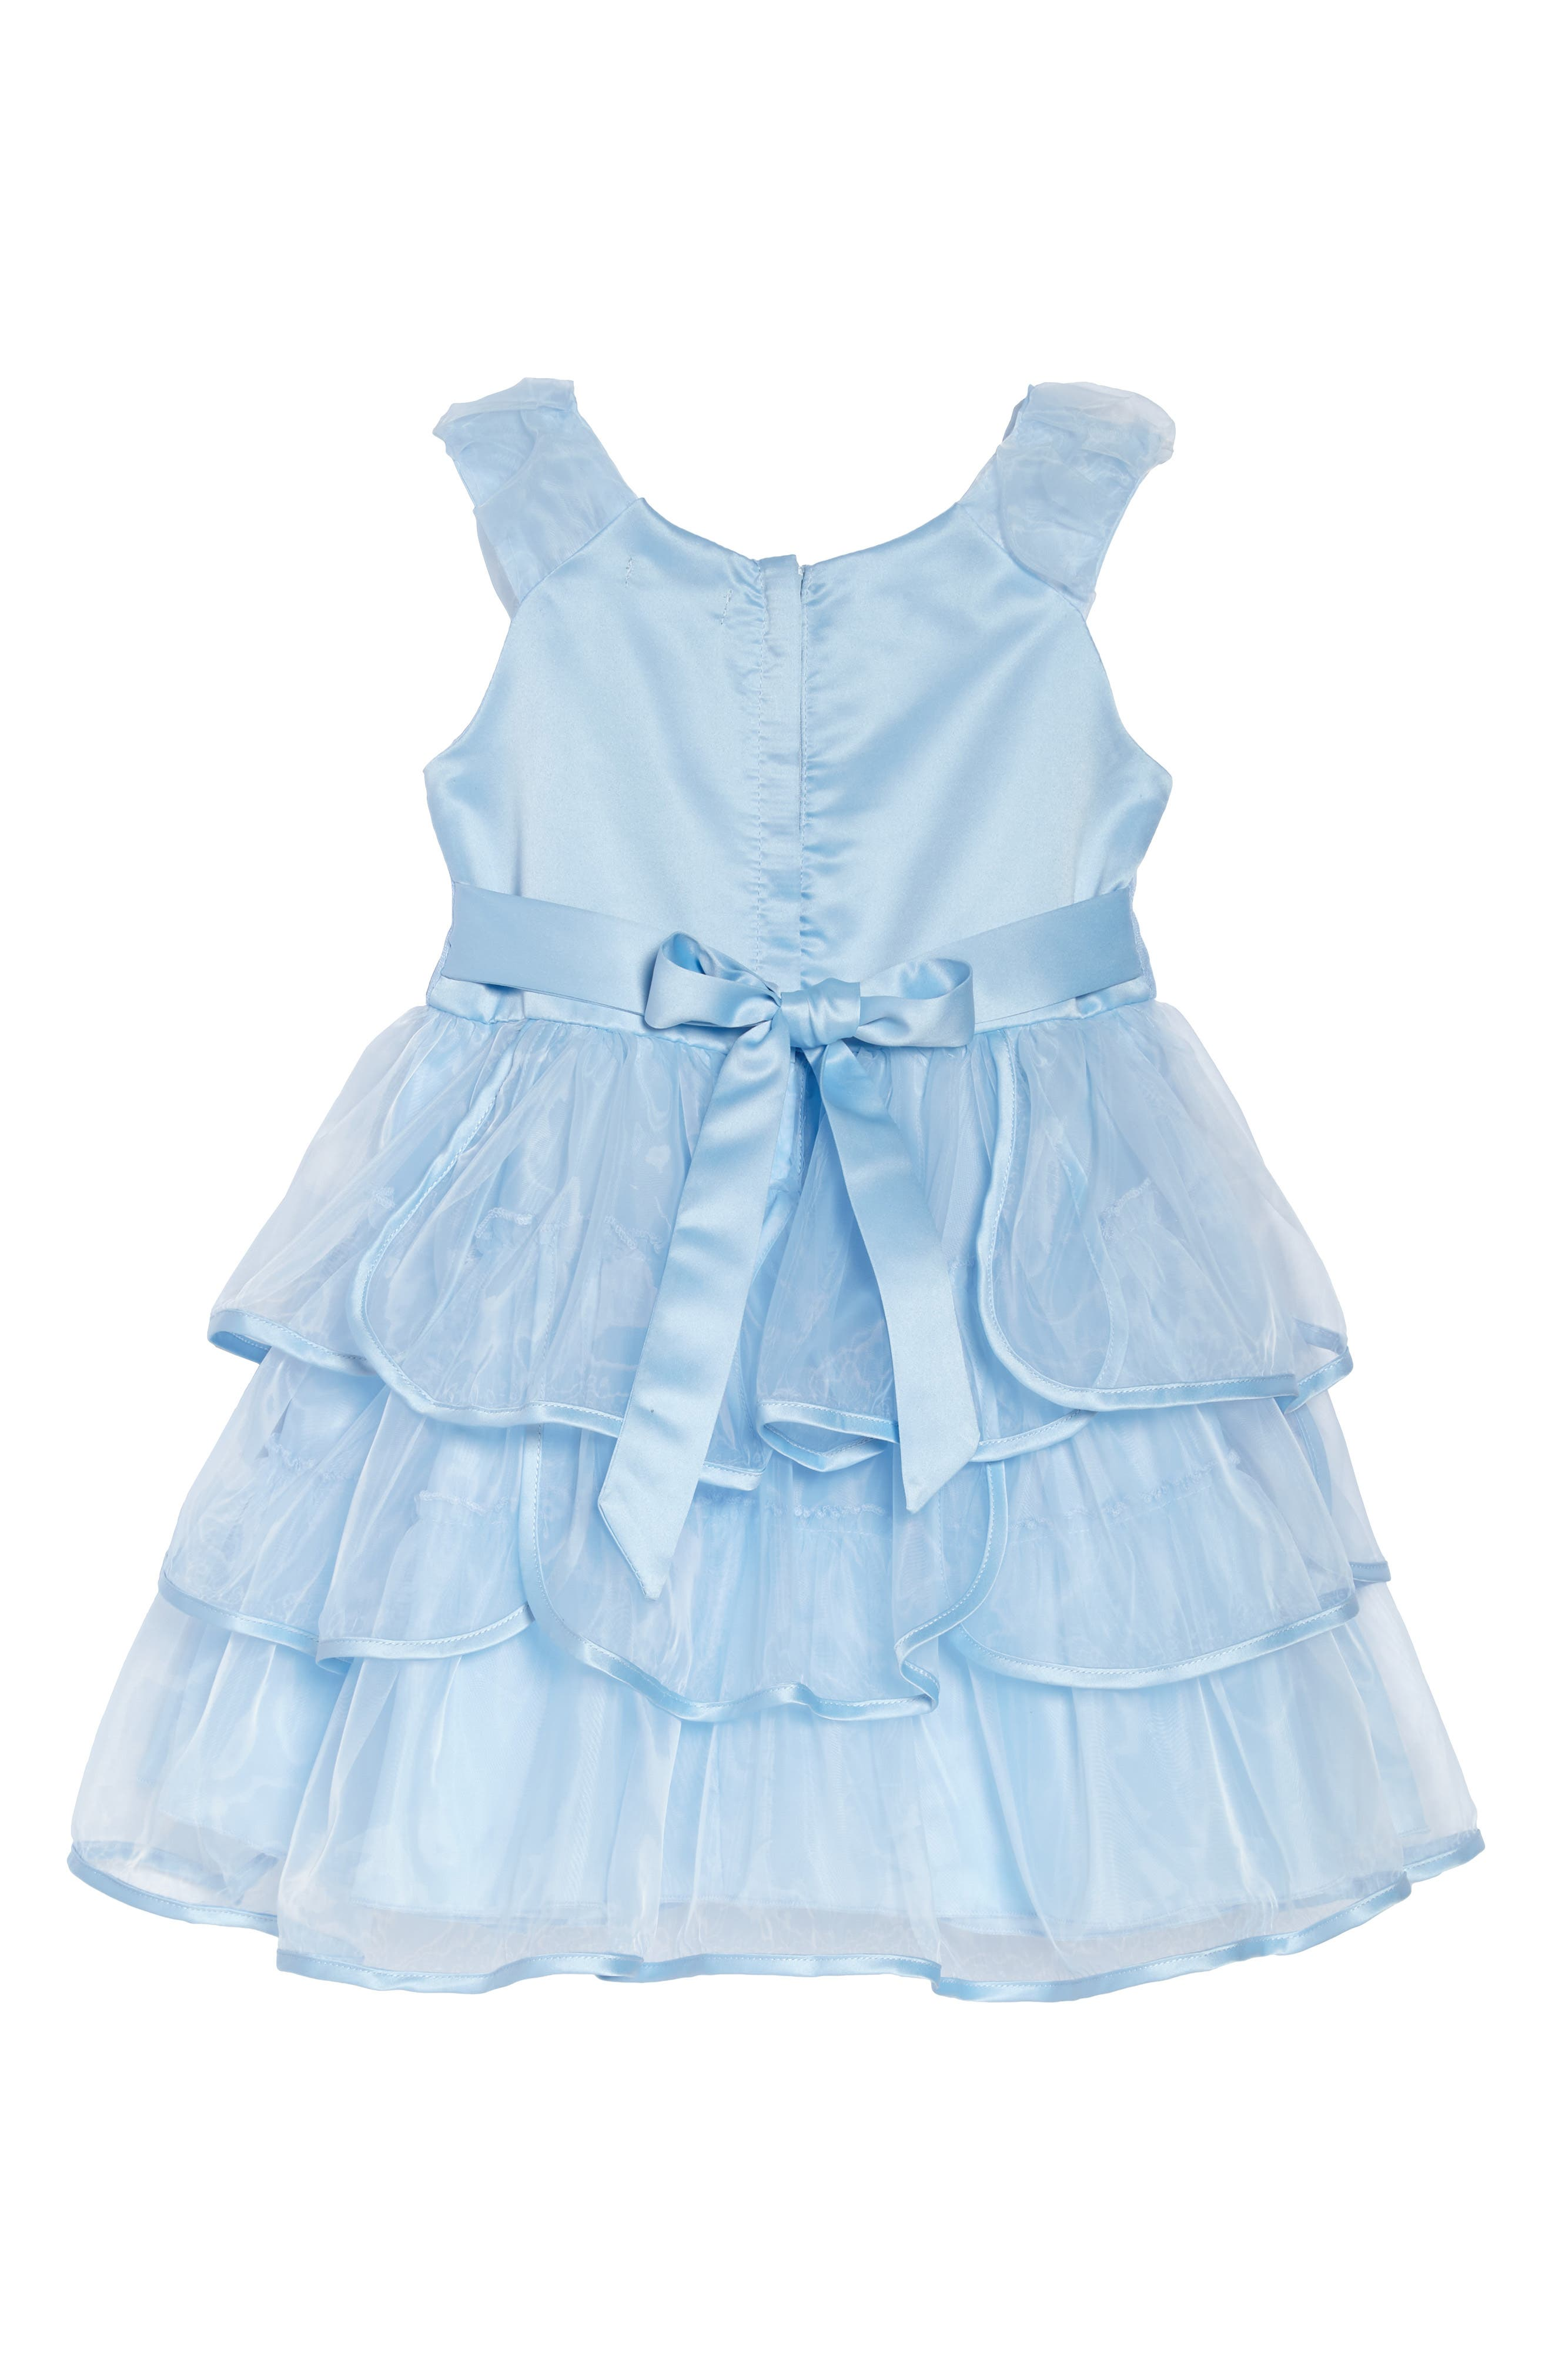 Tiered Organza Party Dress,                             Alternate thumbnail 2, color,                             Light Blue